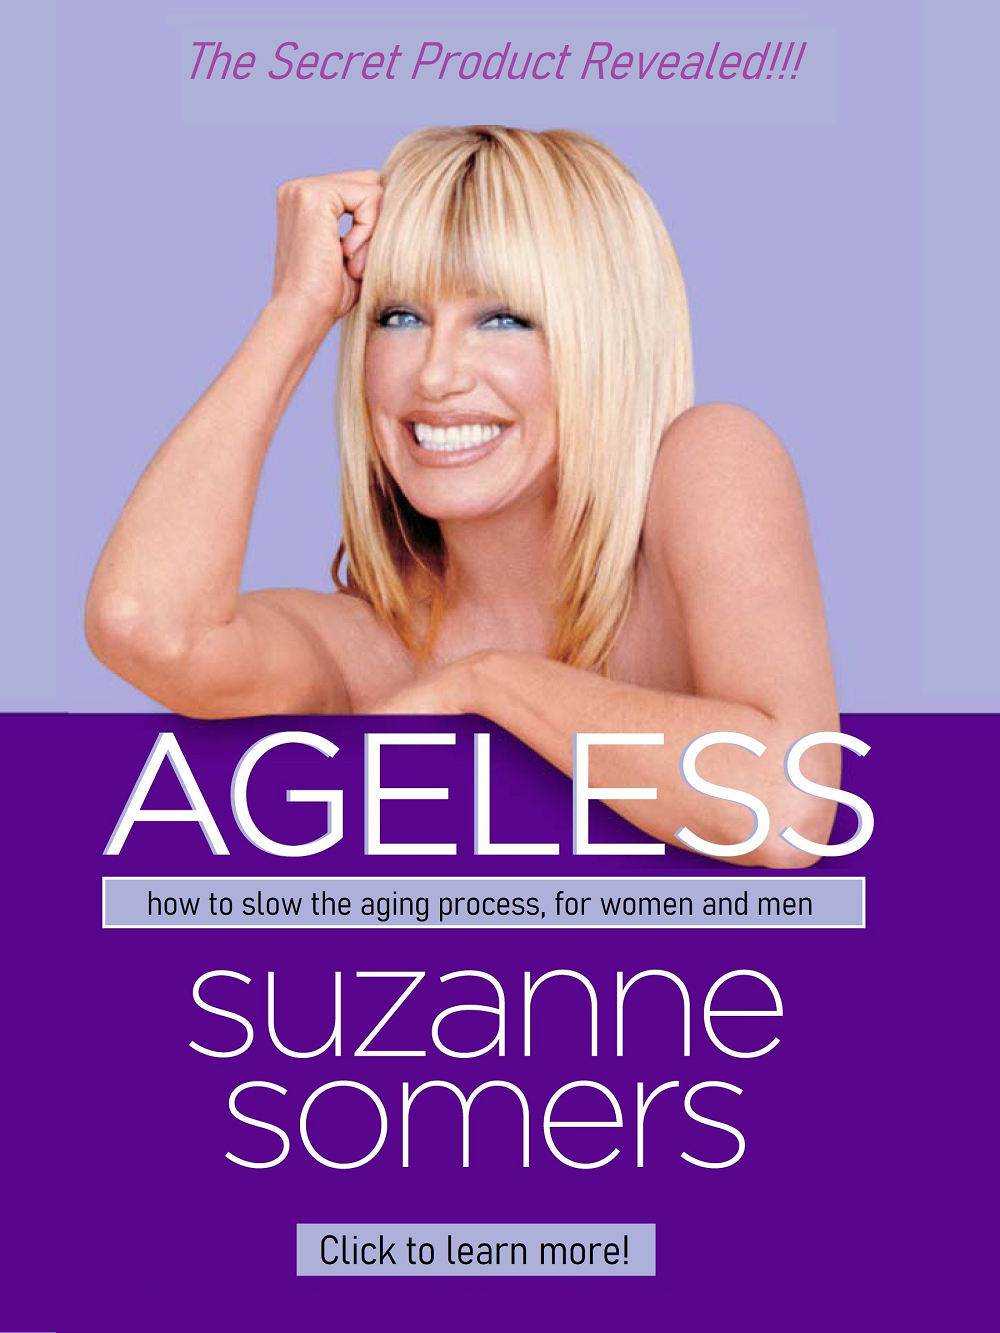 Suzanne Somers talk about TA65